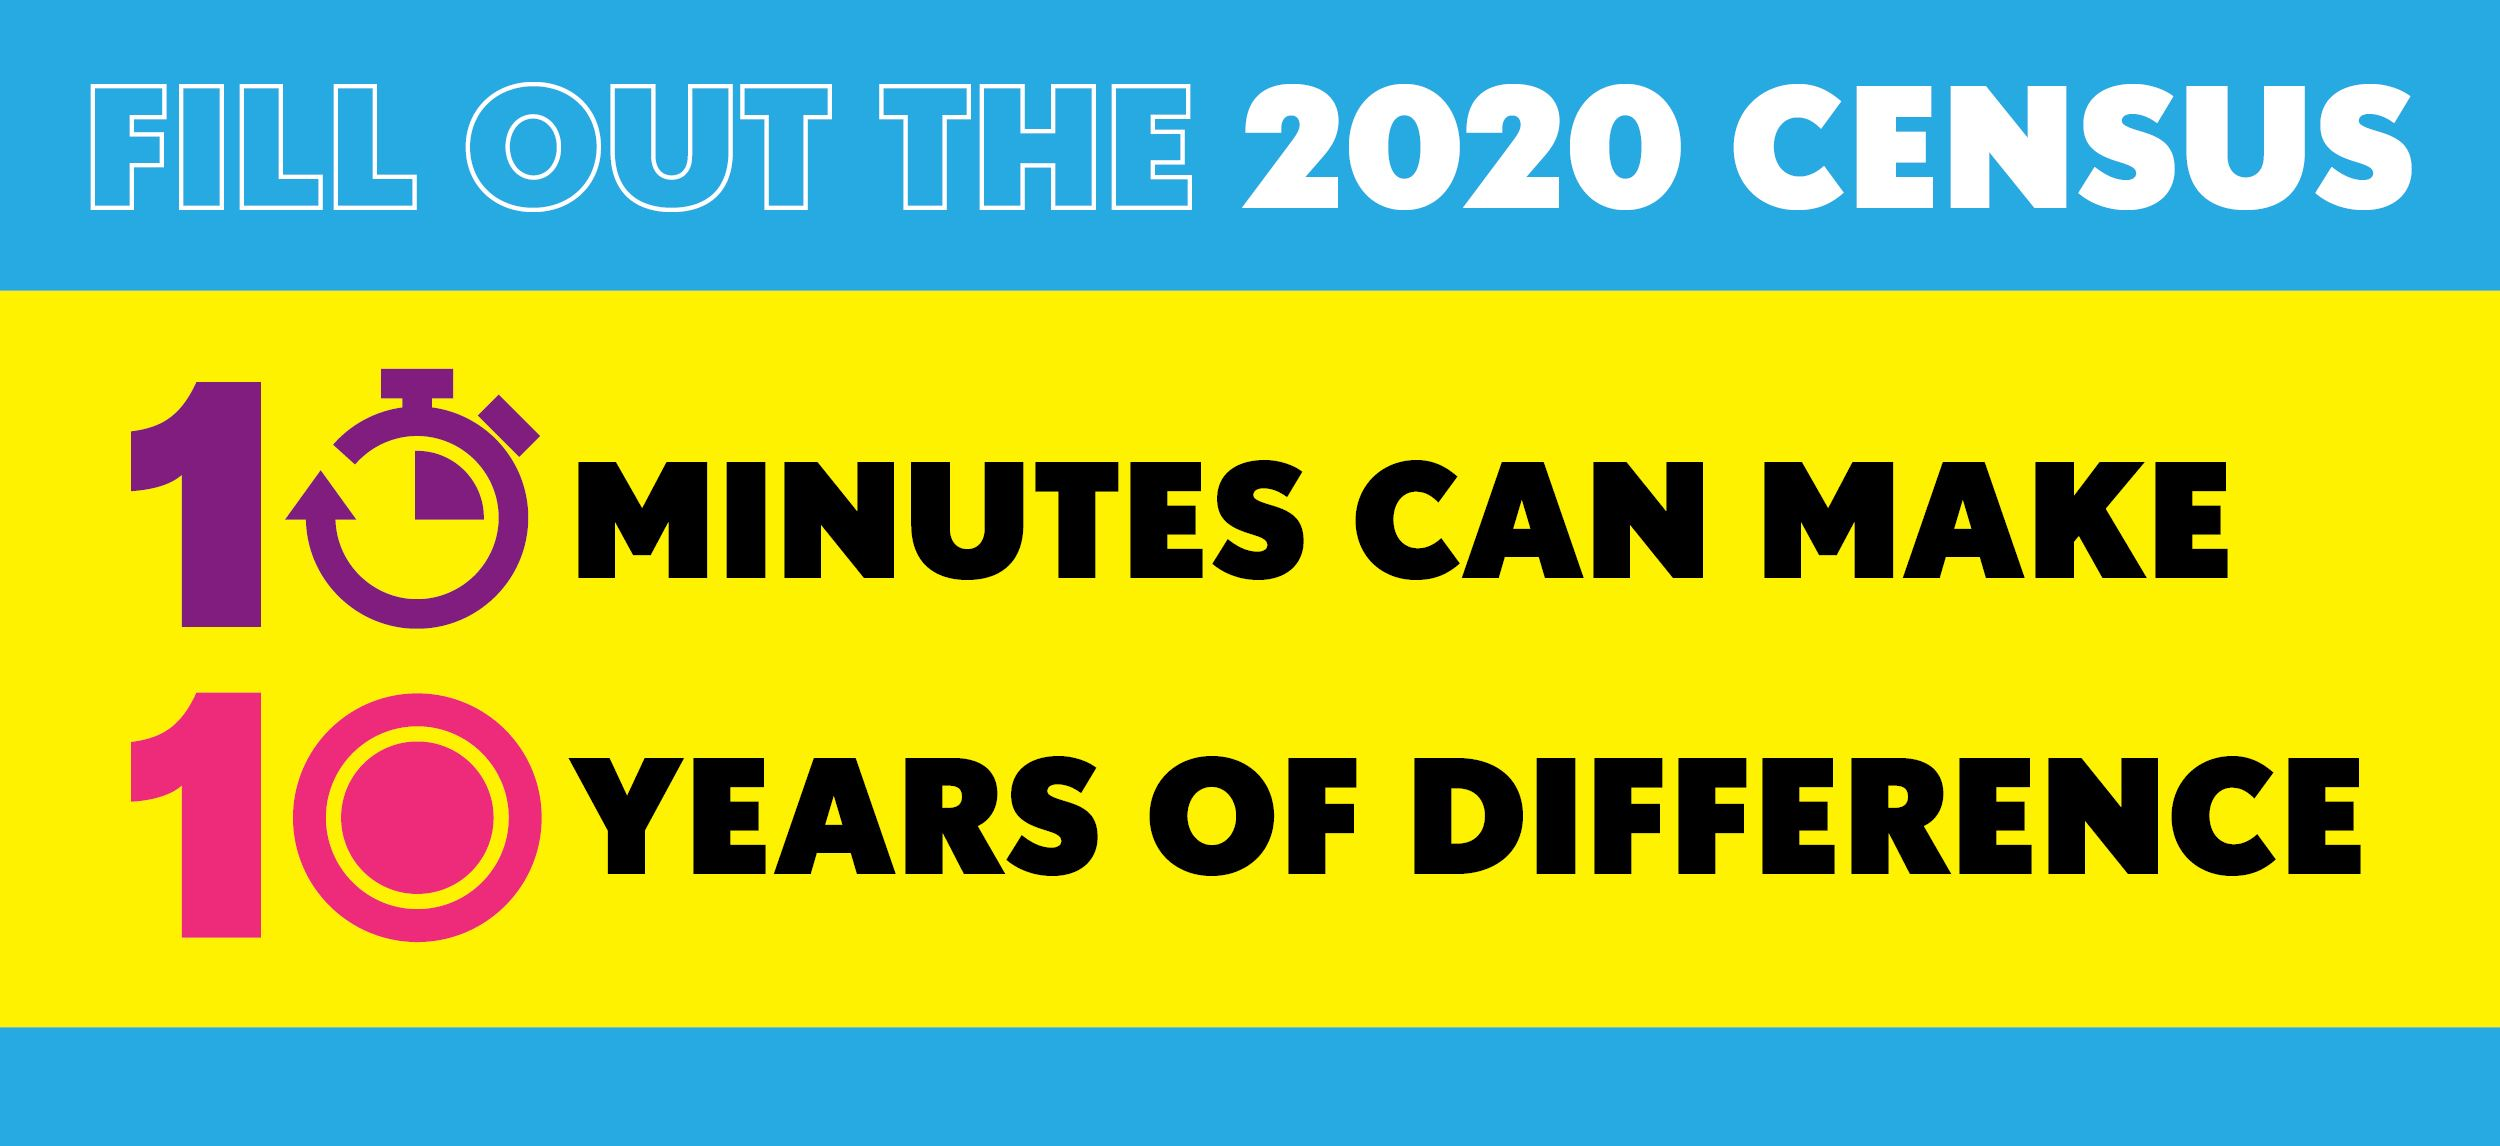 Fill Out the 2020 Census 10 Minutes Can Make 10 Years of Difference